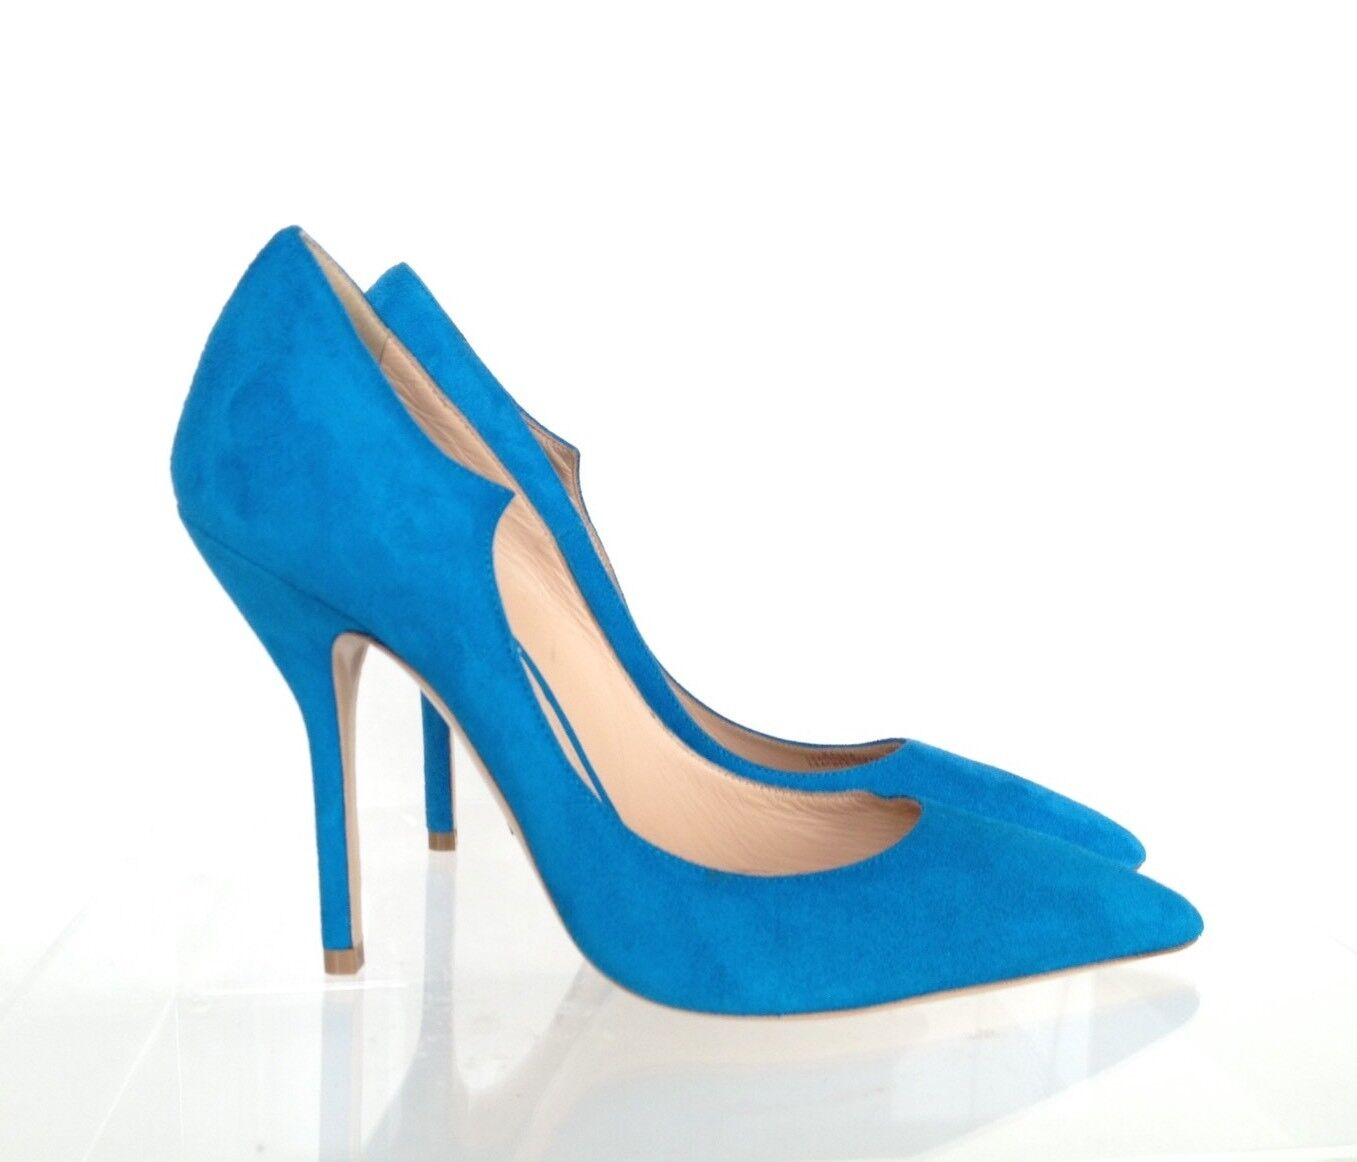 PAUL ANDREW for for ANDREW J.CREW Suede Pumps Sz 7 Vivid Cerulean Blue e1326 $398 41675f